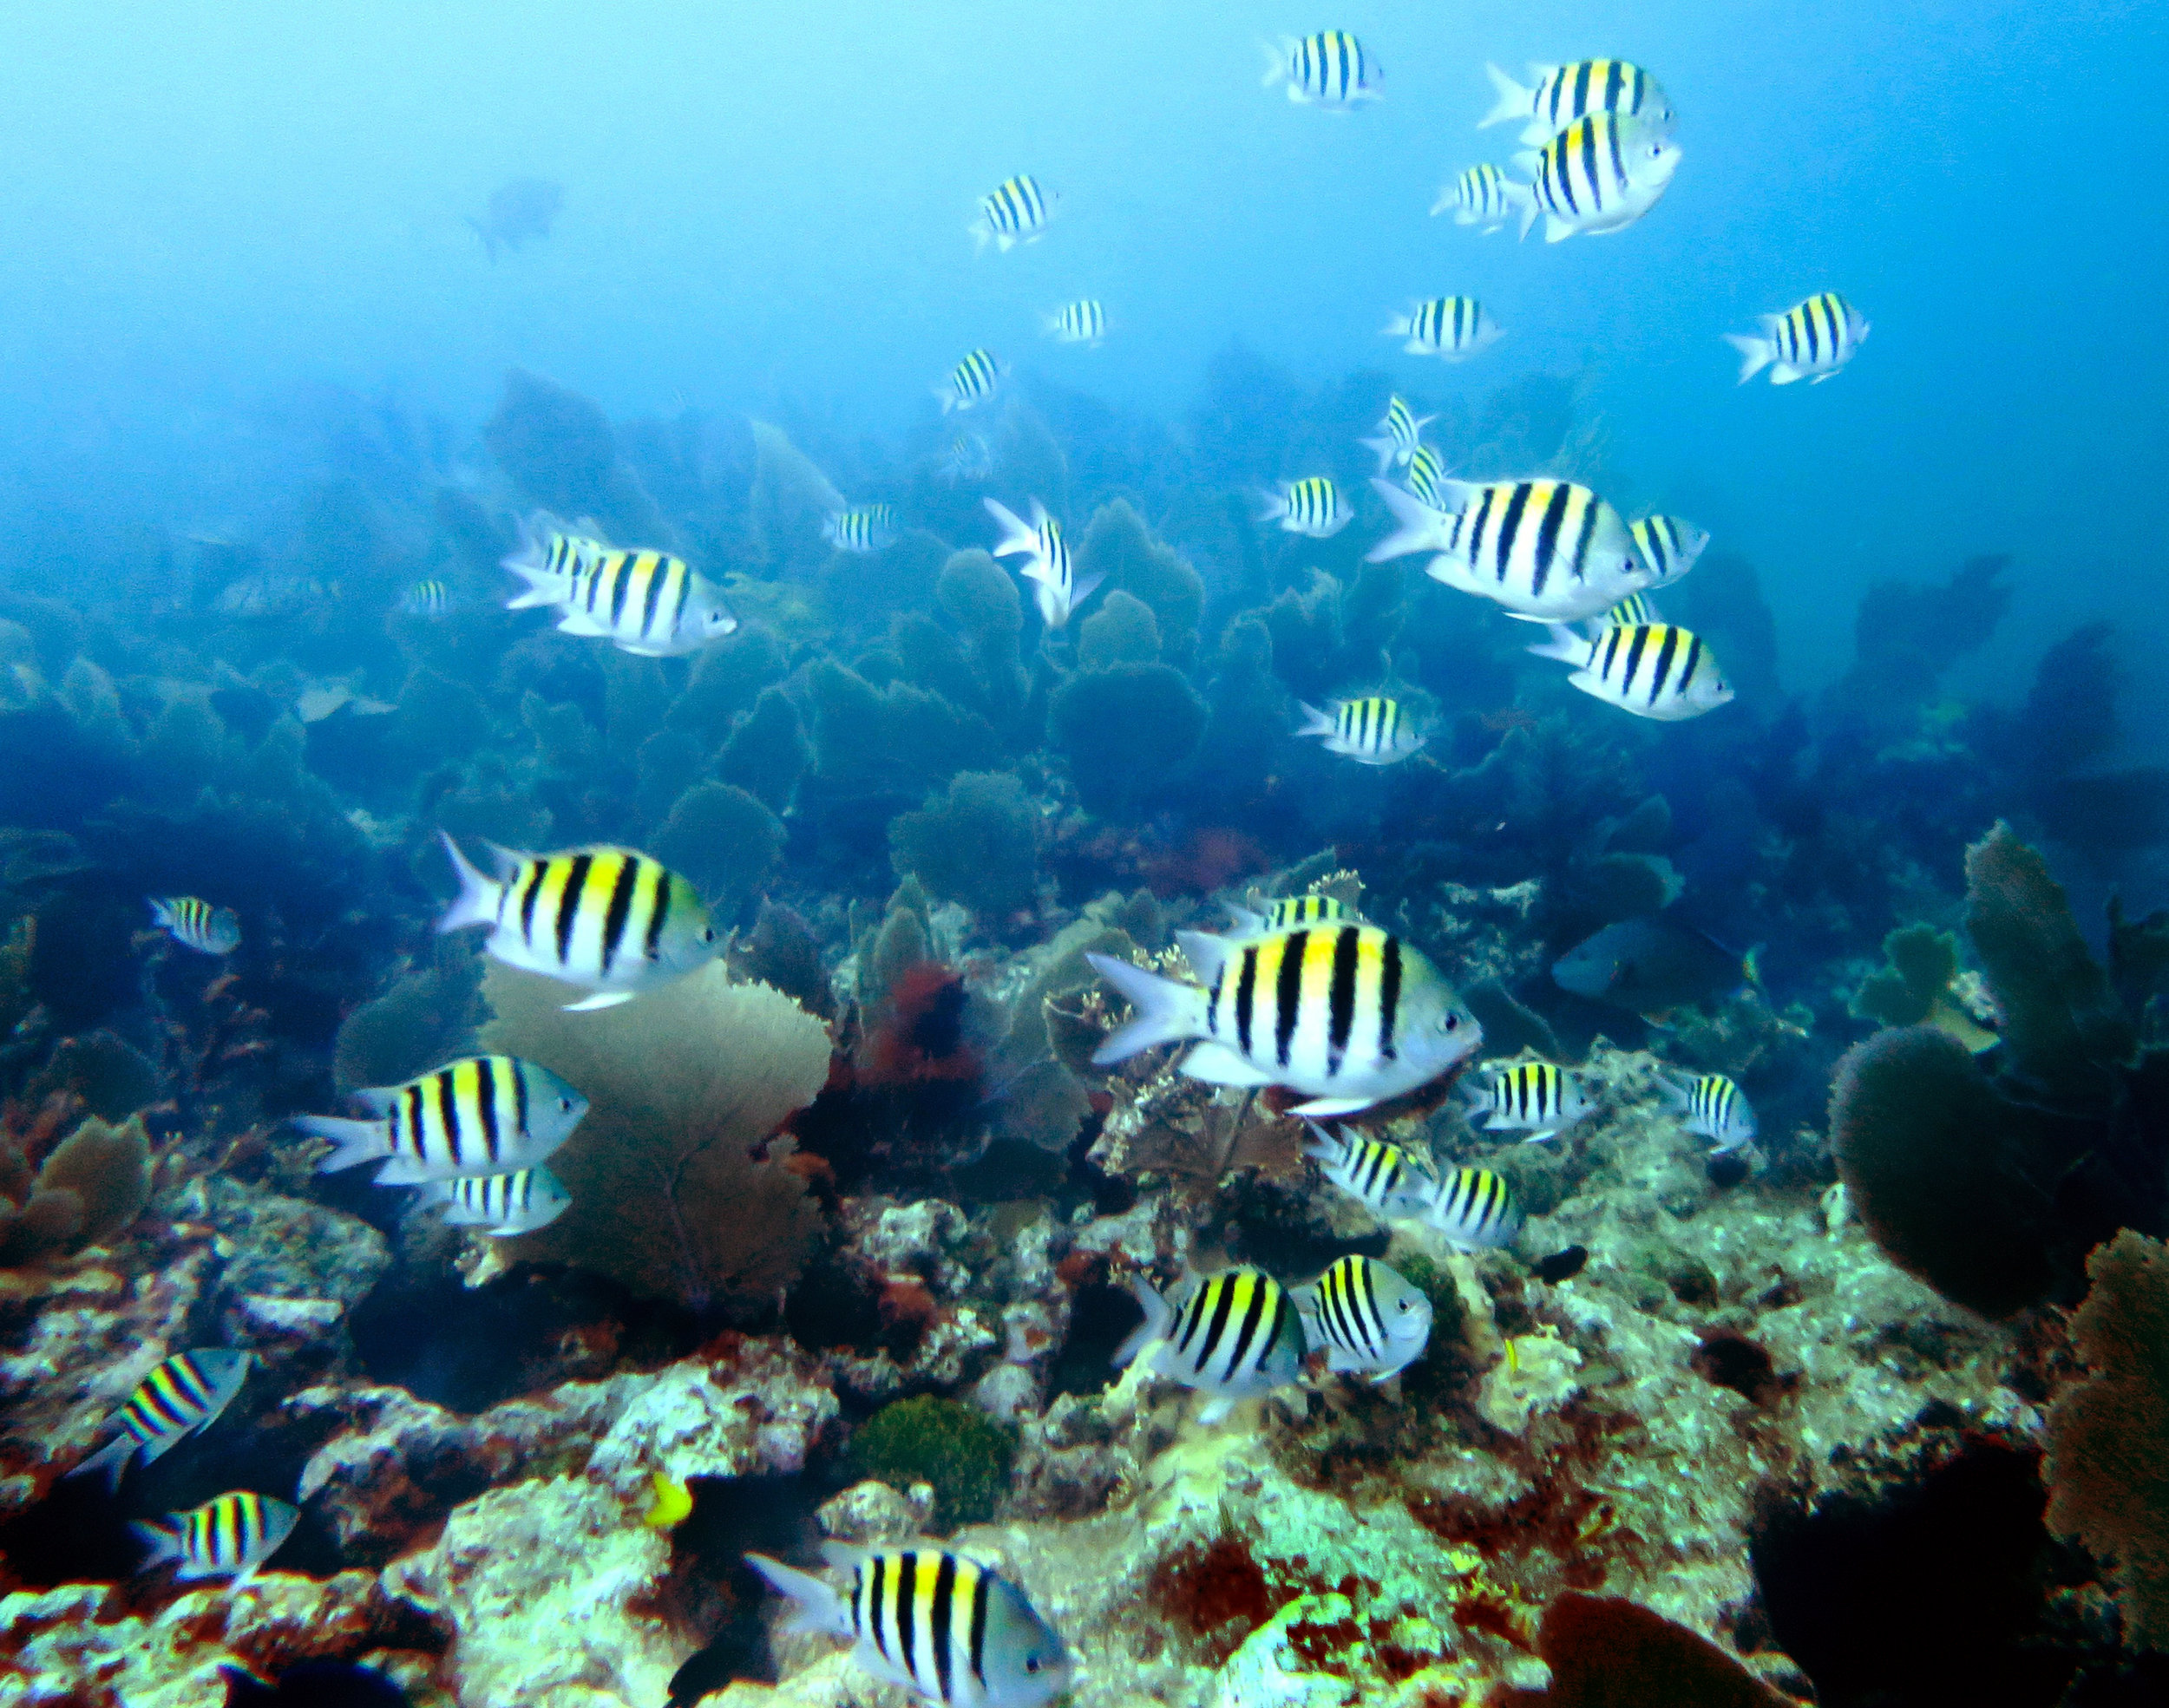 A reef teeming with sergeant major ( Abudefduf saxatilis ) and gorgonians in John Pennekamp Coral Reef State Park.